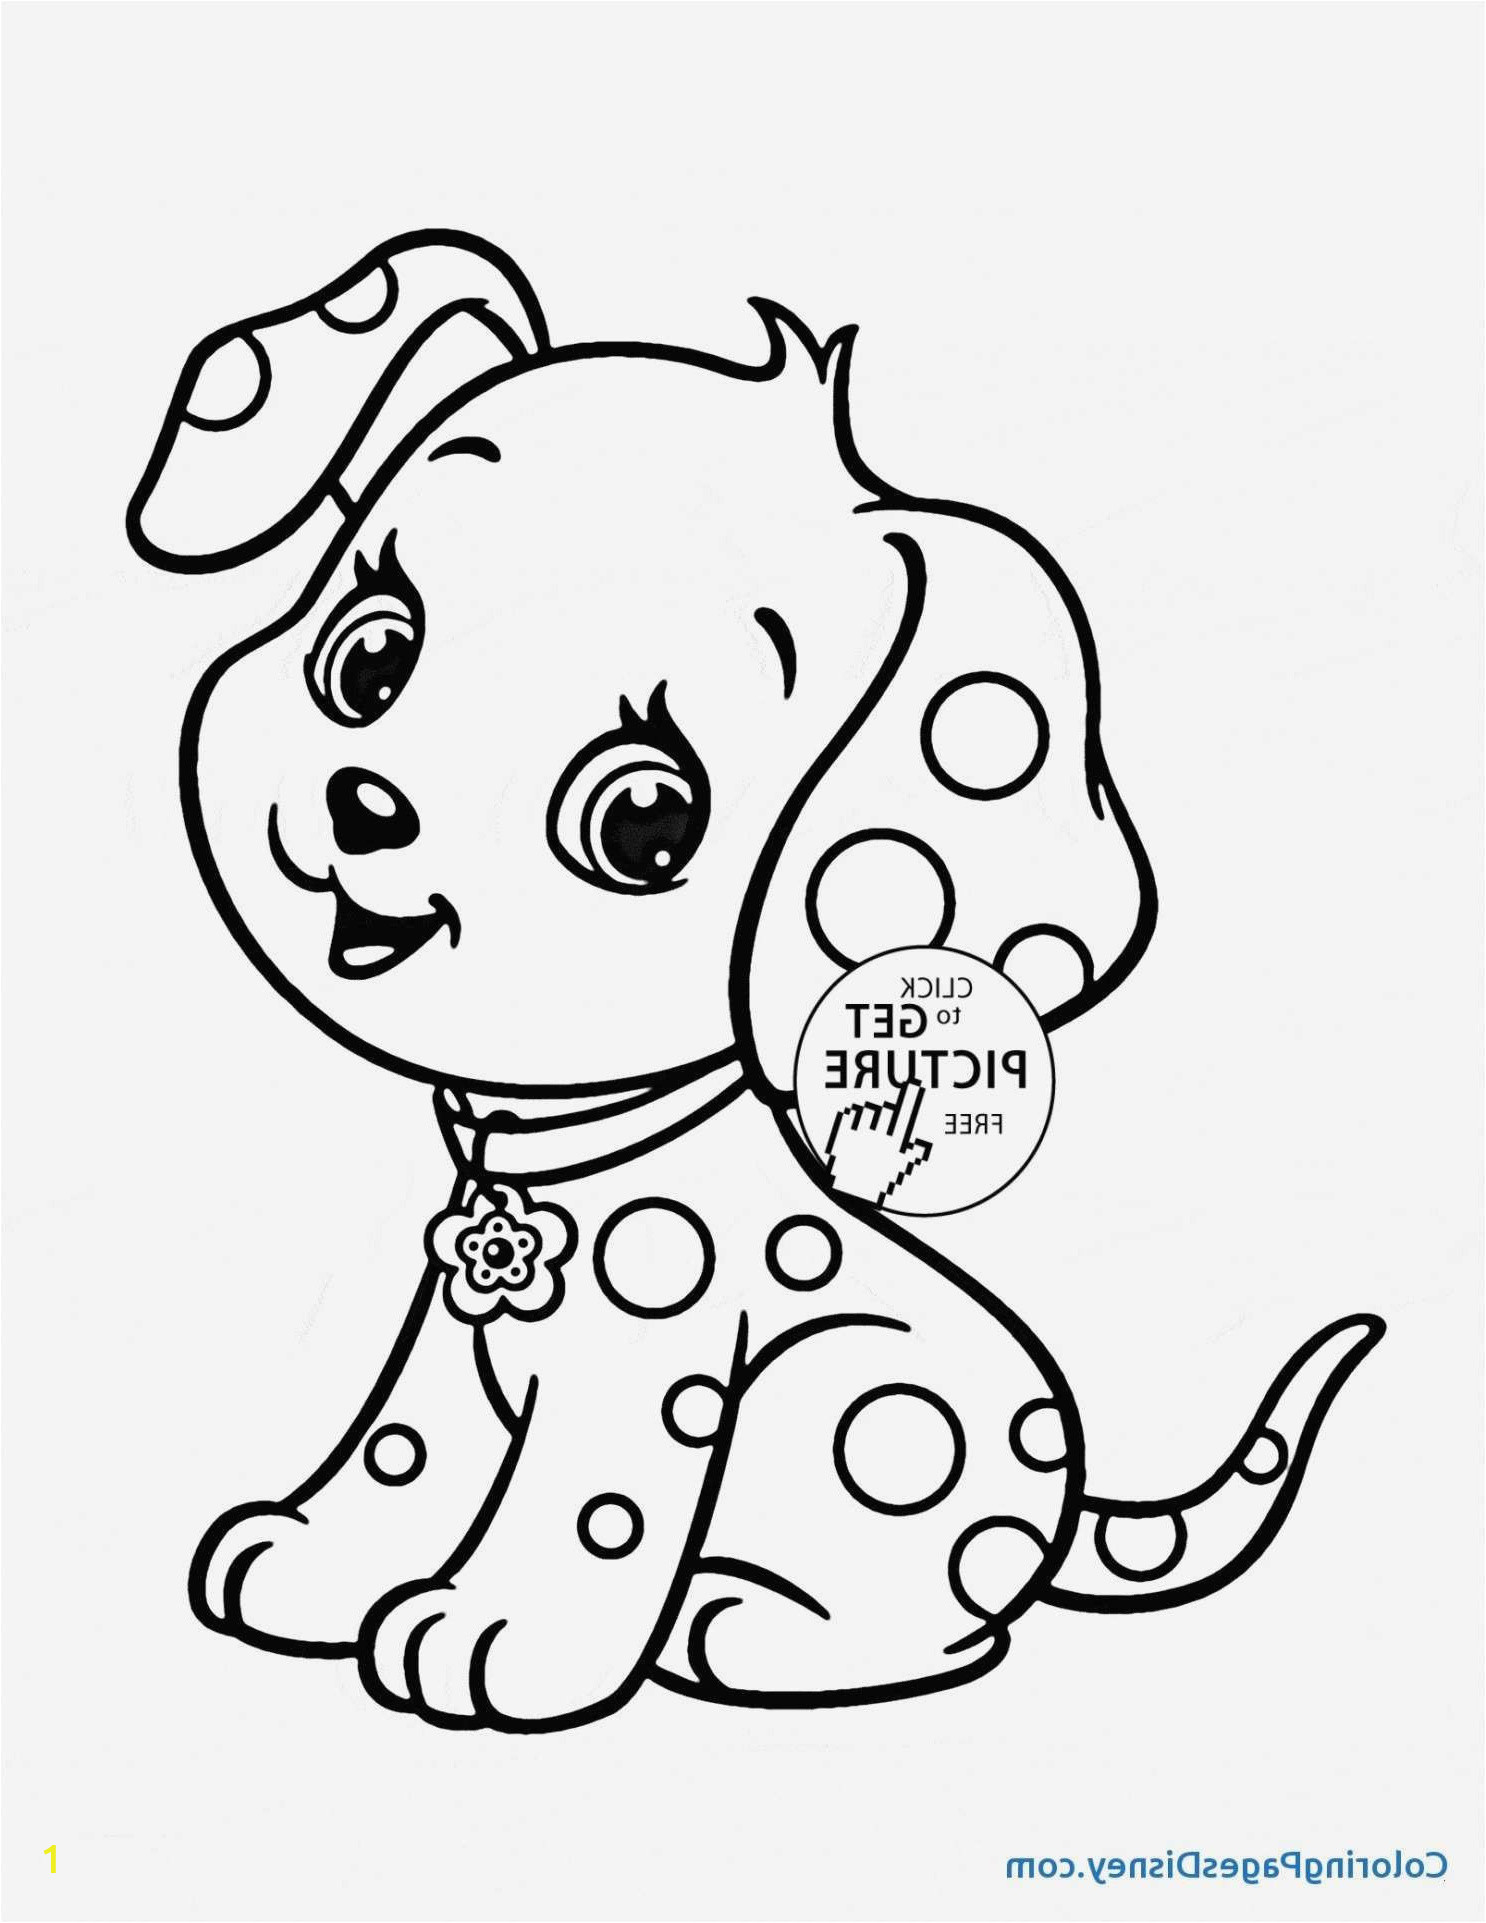 coloring page for free to print beautiful collection beautiful pointing hand coloring page nocn of coloring page for free to print